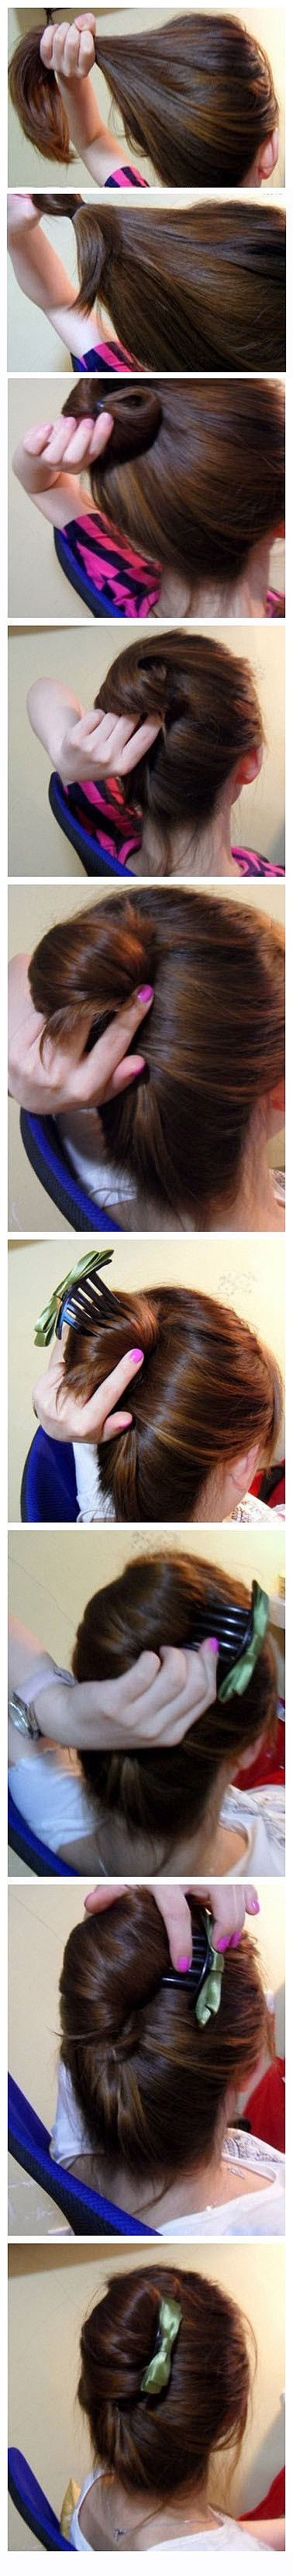 must find these kinds of combs to try this hairstyle!